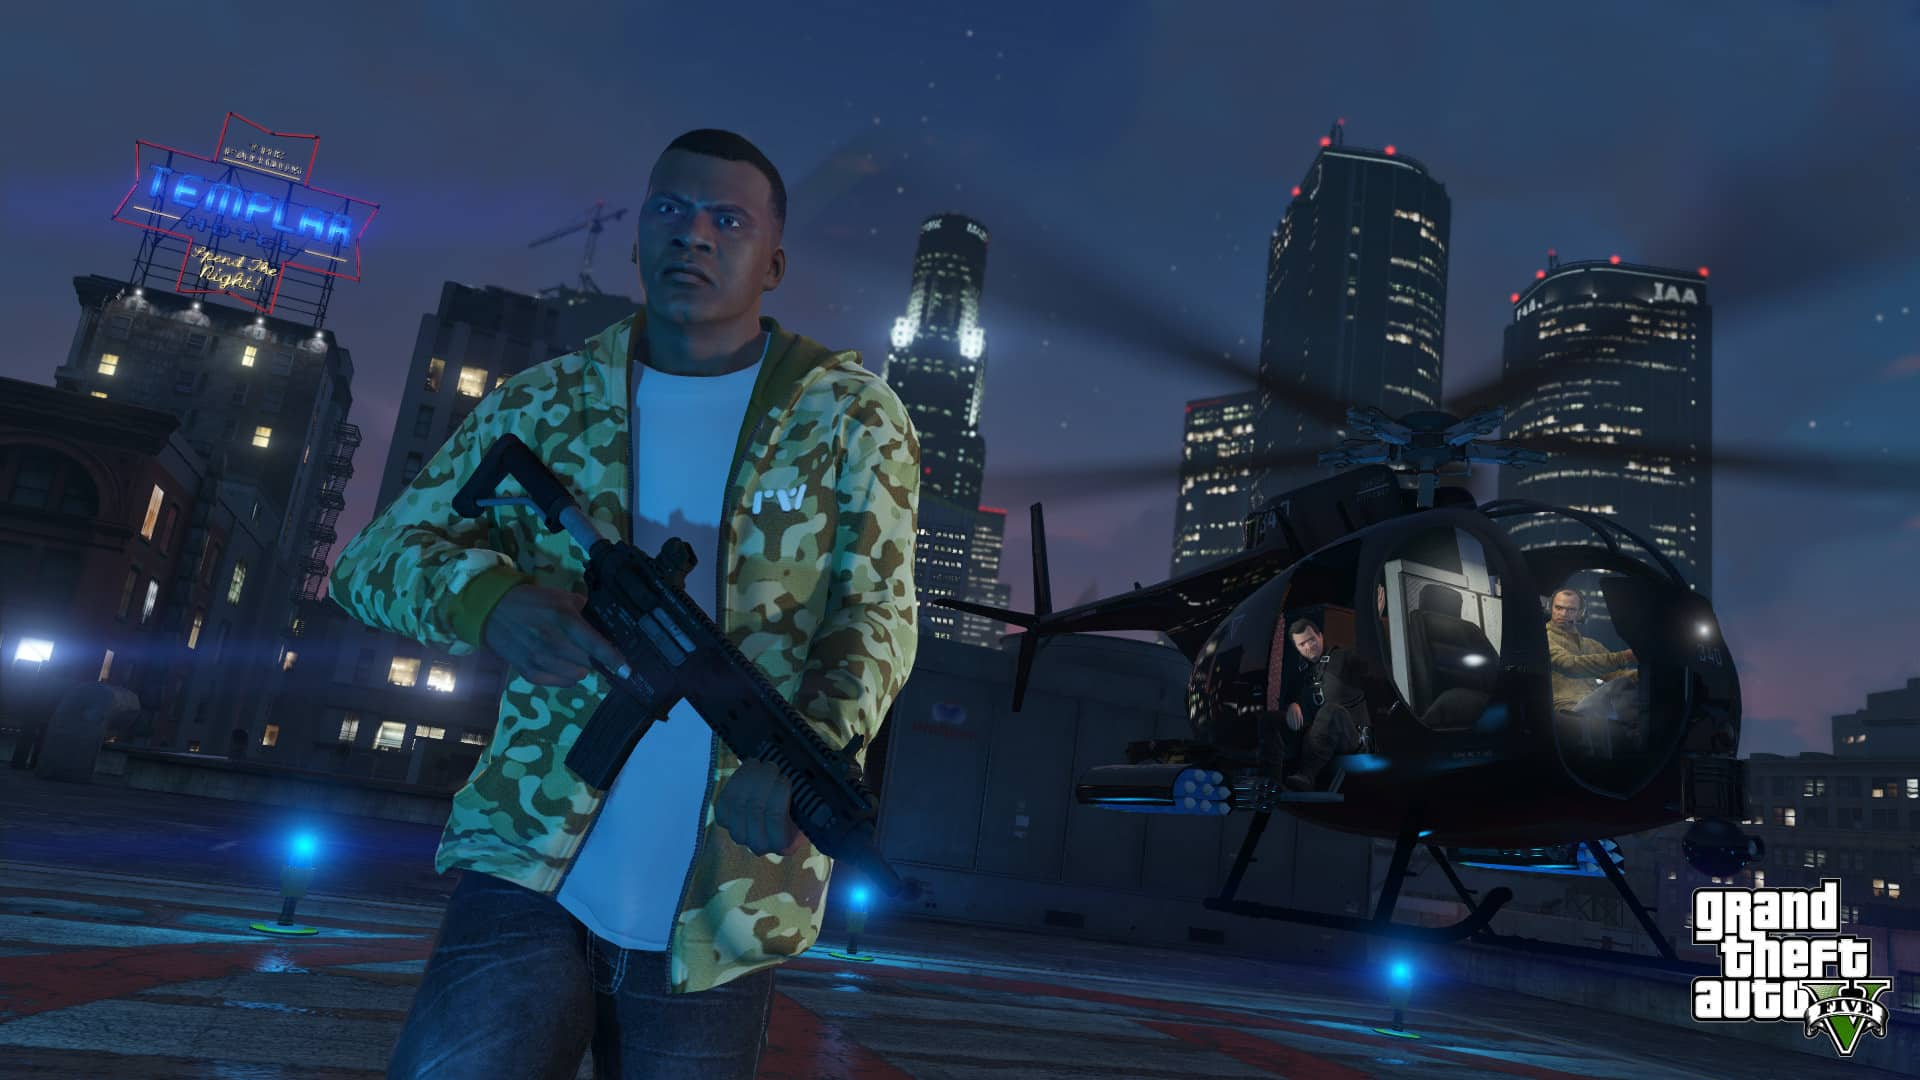 gta 5 Gta 5 download right now, download and play an amazing game produced by rocstarit is a popular series of very good gangster game which you can download to your pc from our website.